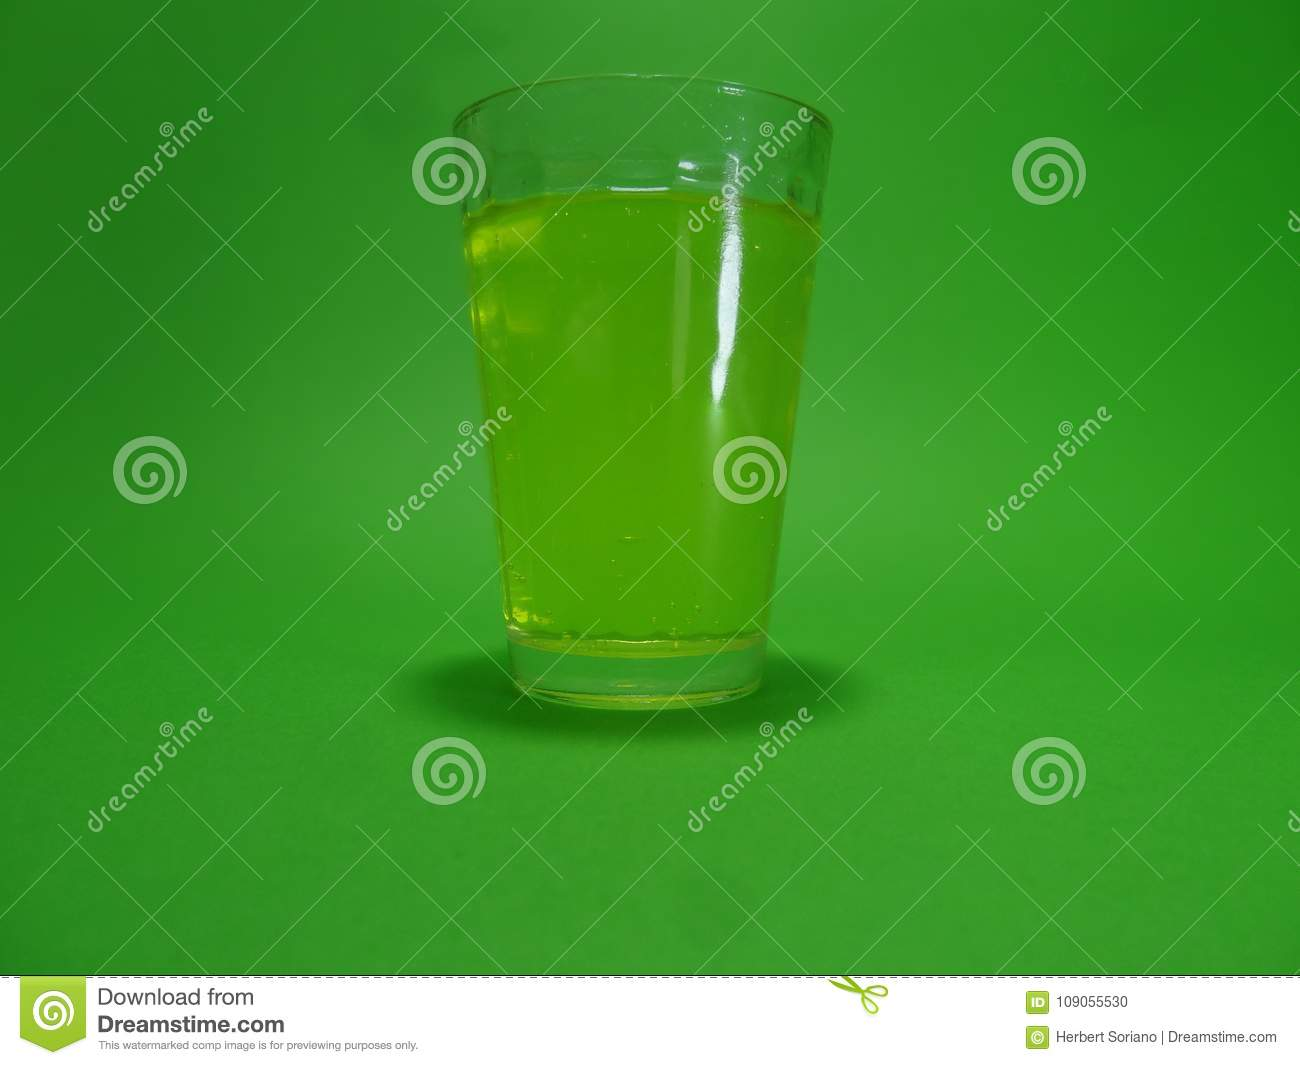 Absinthein a transparent glass on a green background